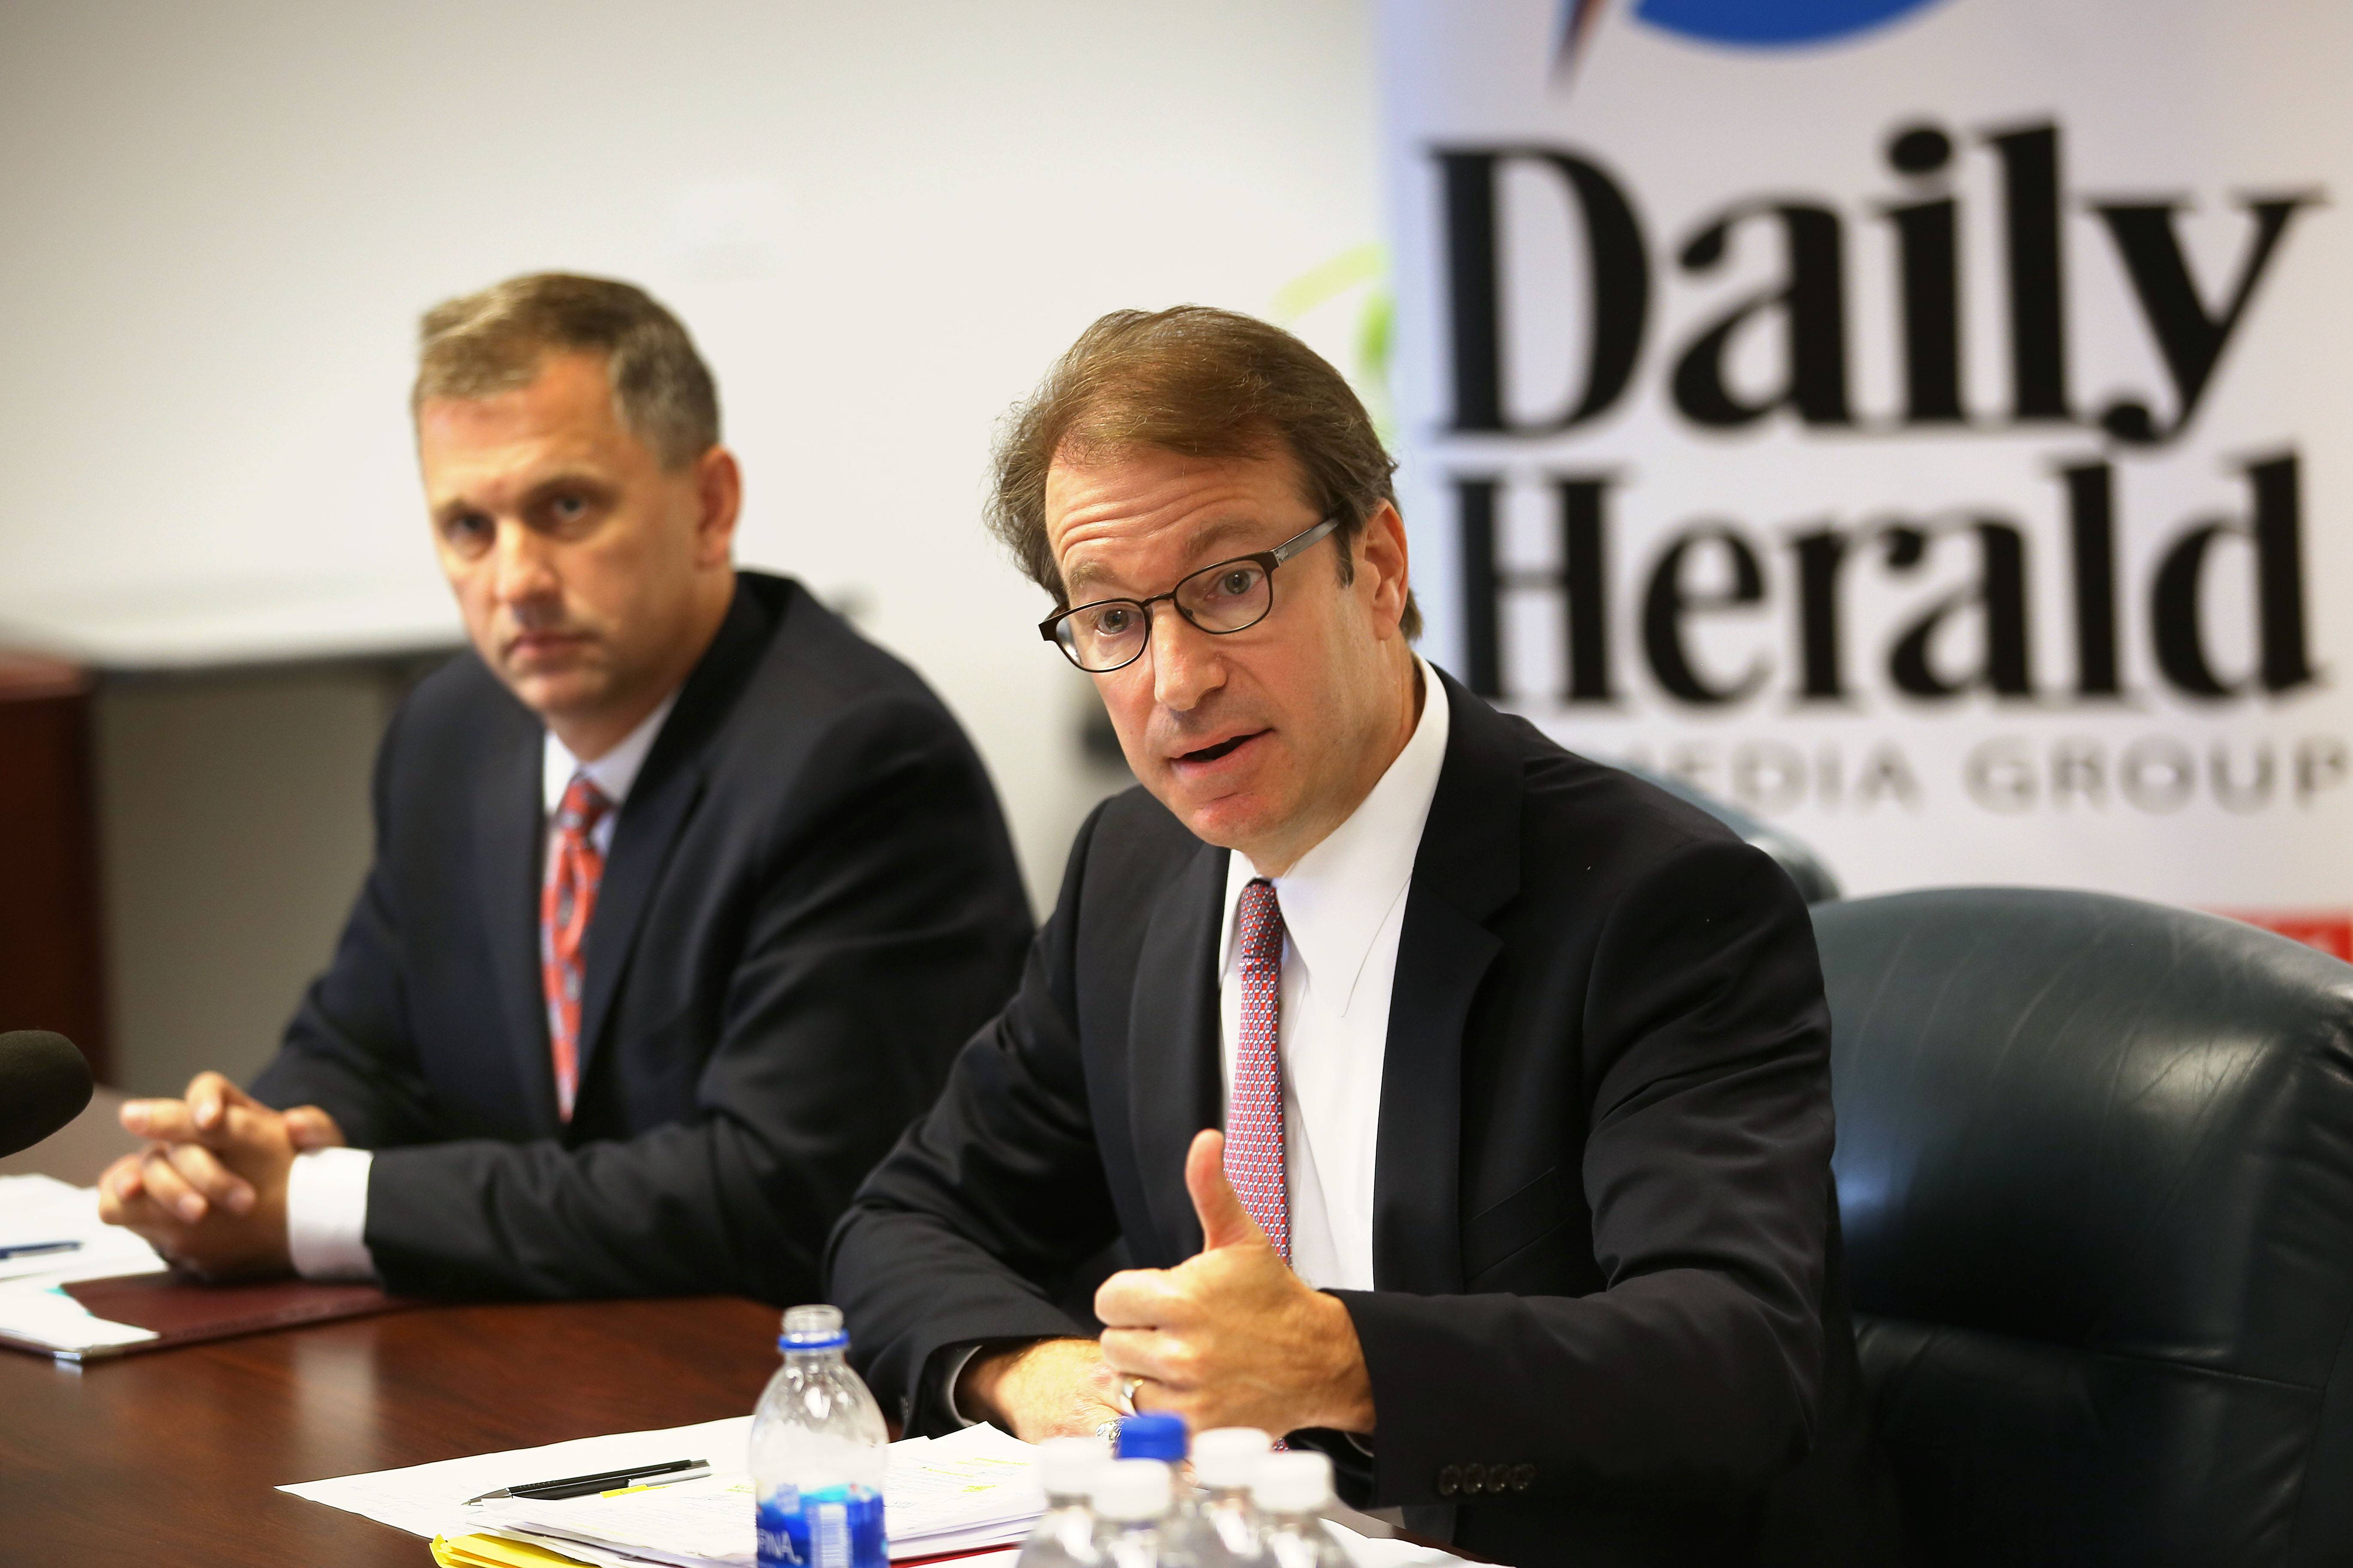 Incumbent Republican Peter Roskam of Wheaton, right, and Democratic challenger Sean Casten of Downers Grove say taxes are the biggest issue dividing them in the race to represent the 6th U.S. Congressional District. The two met with the Daily Herald editorial board Monday.